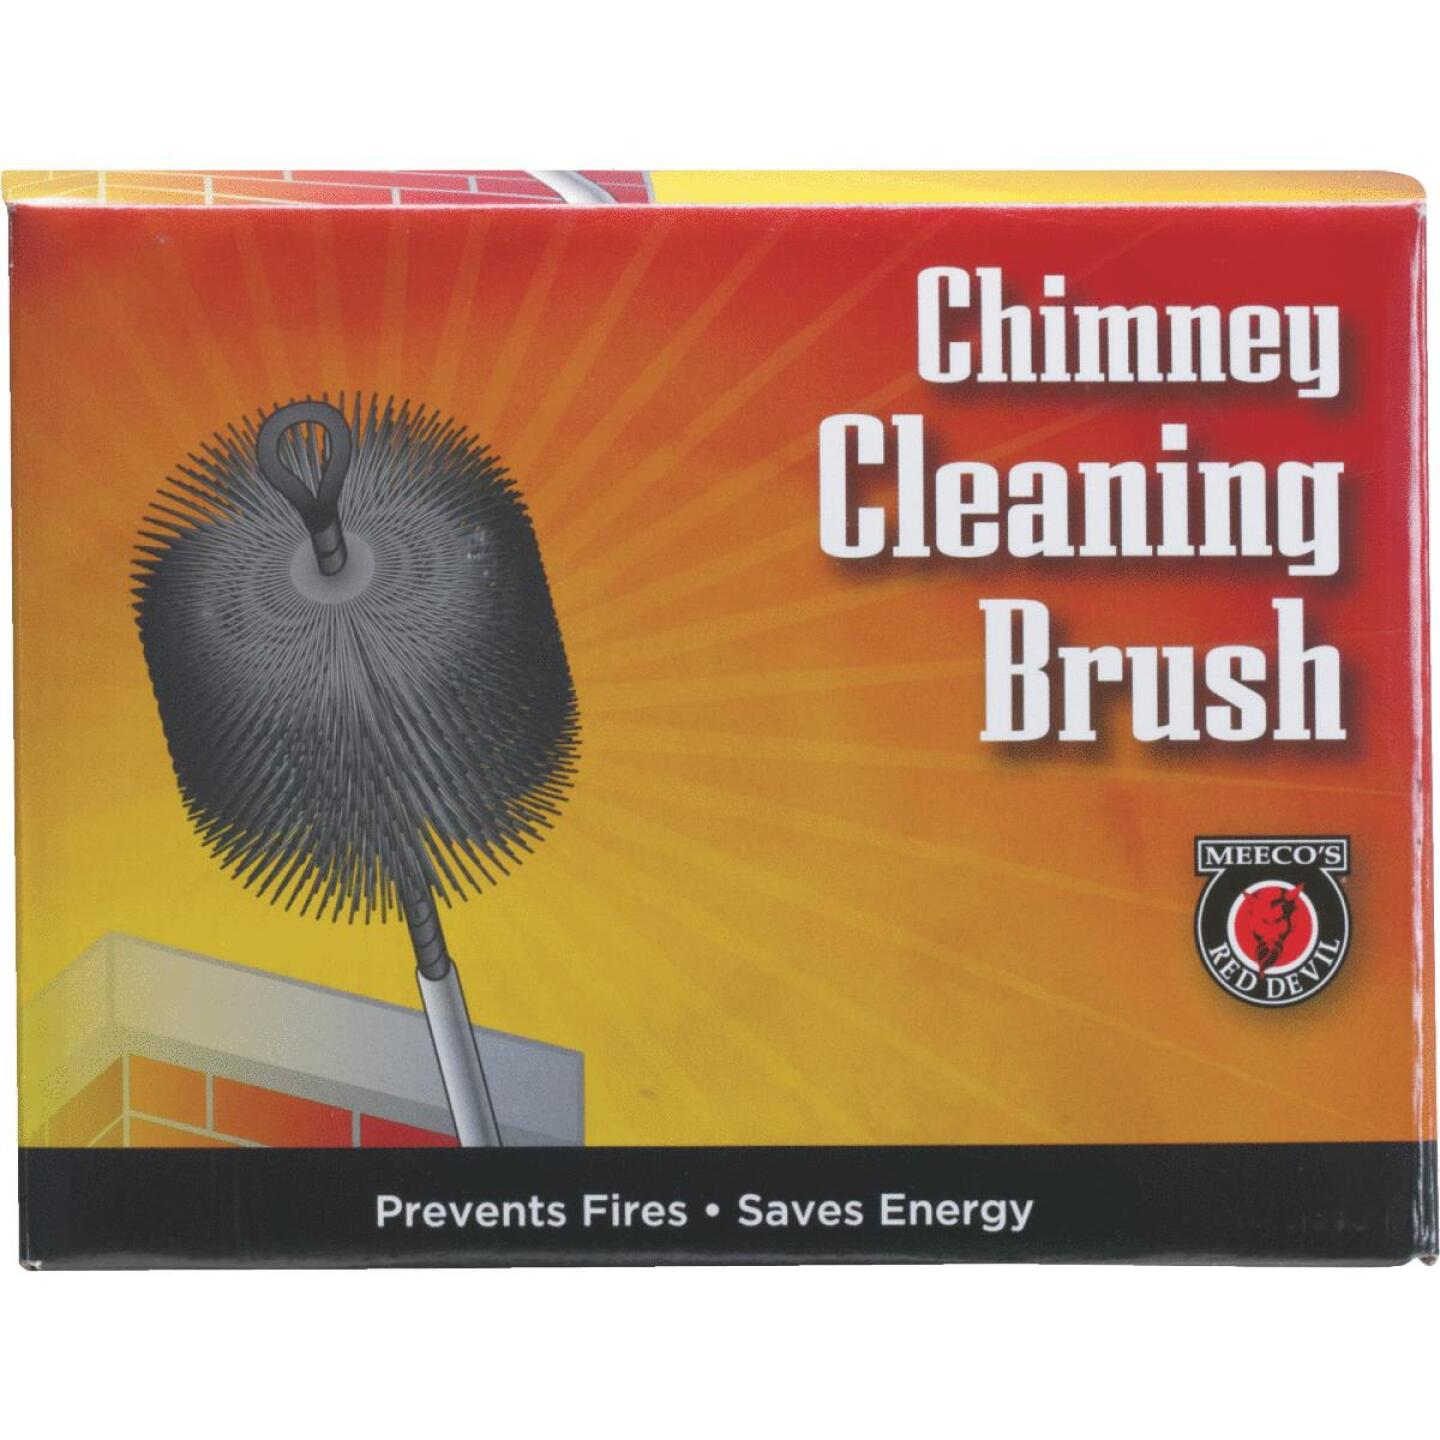 Meeco's Red Devil 8 In. Square Wire Chimney Brush Image 2